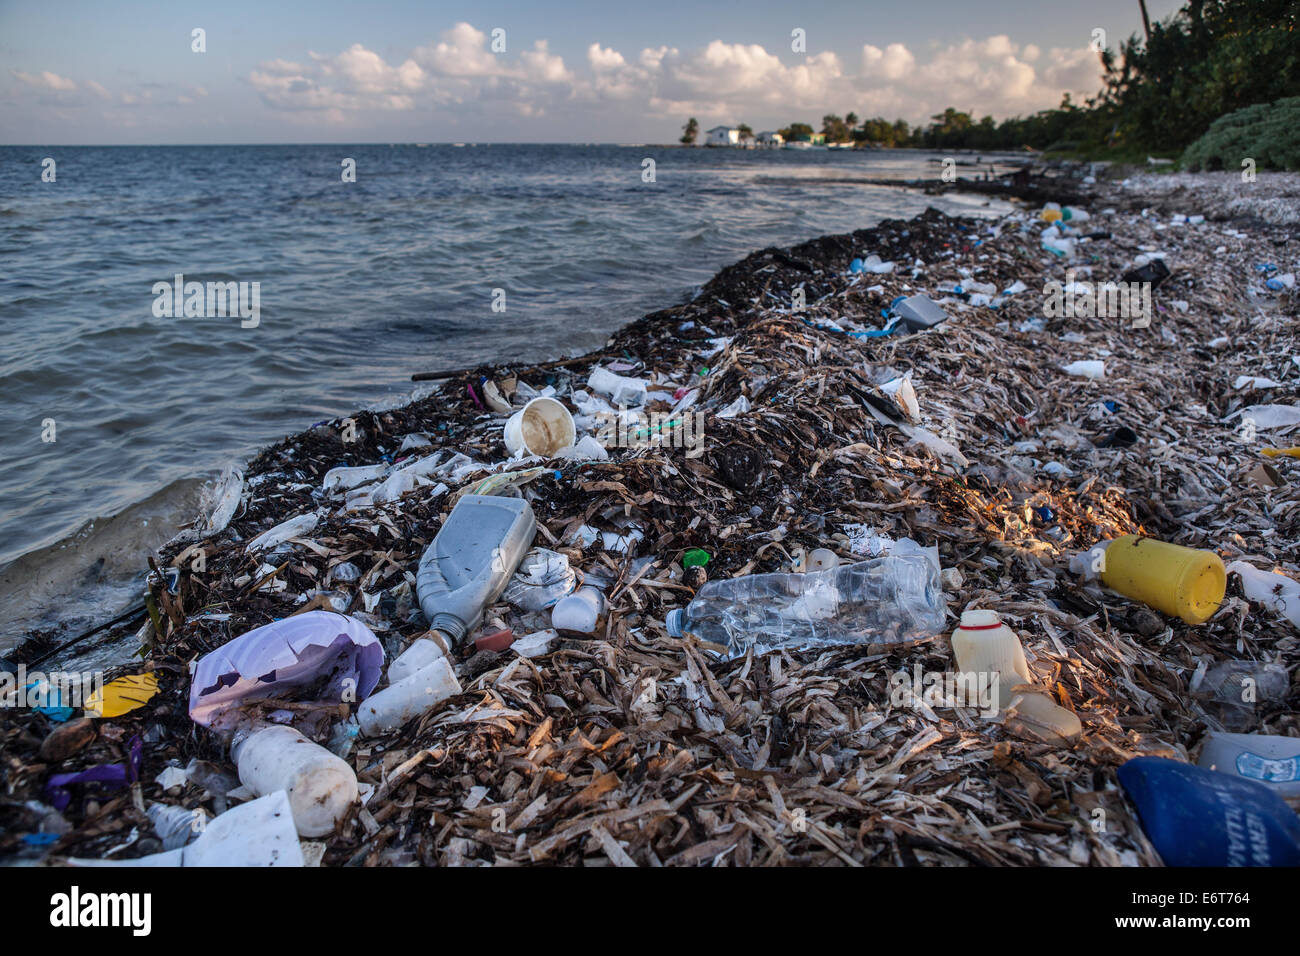 Plastic Waste washed up at shore, Turneffe Atoll, Caribbean, Belize - Stock Image